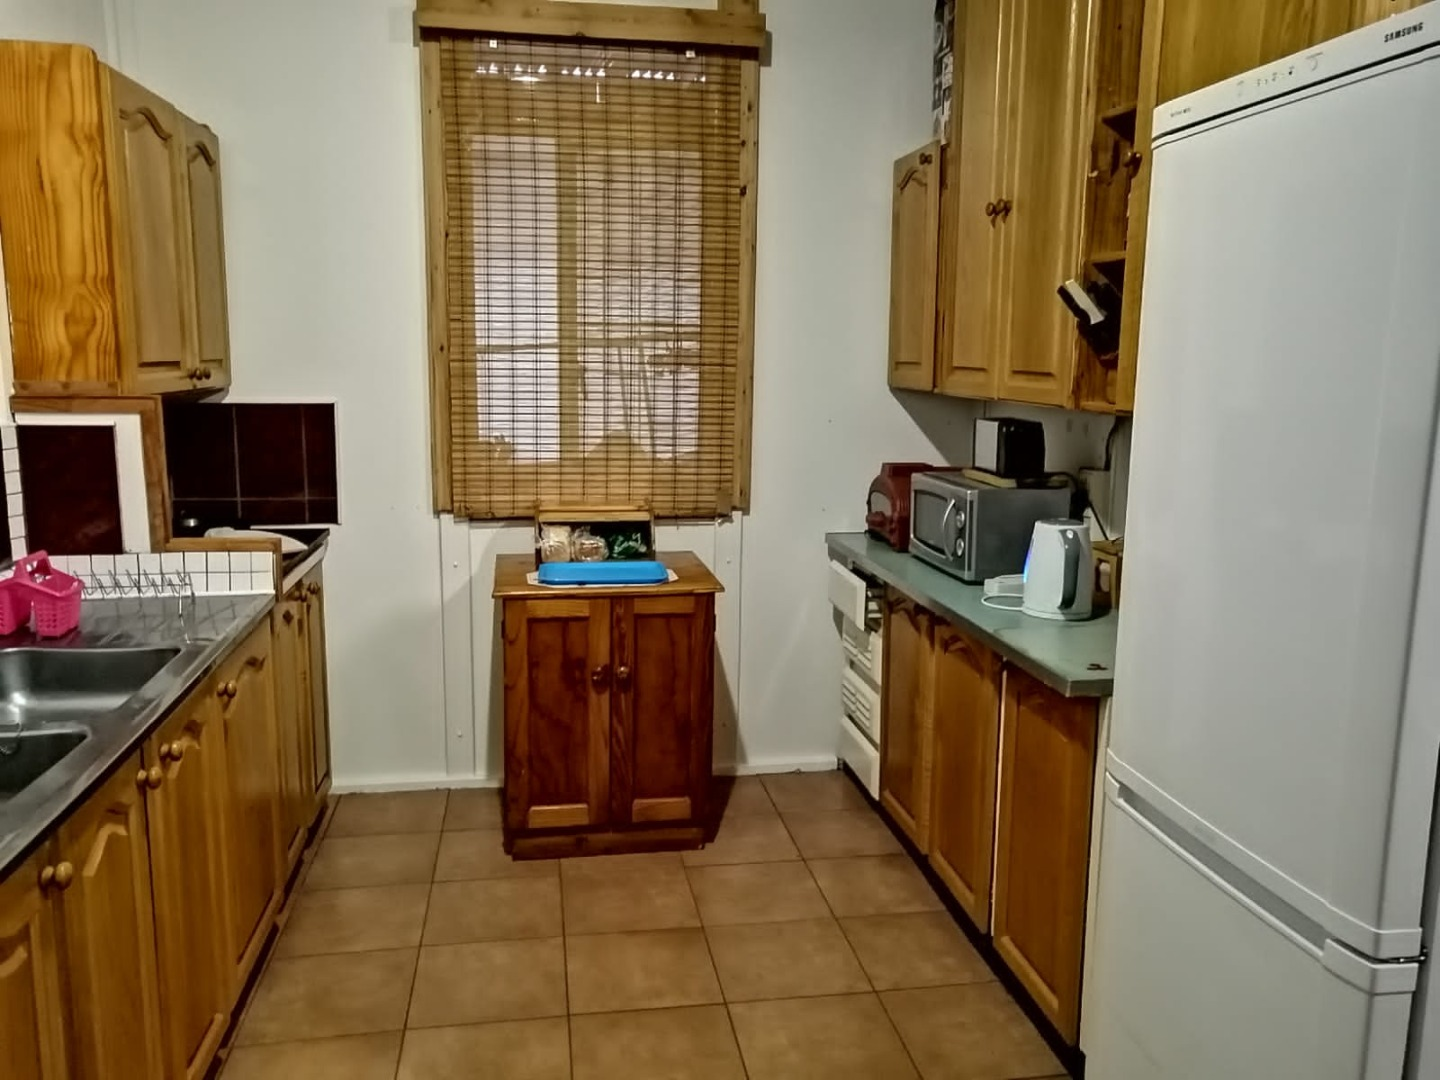 3 Bedroom House For Sale in Oviston